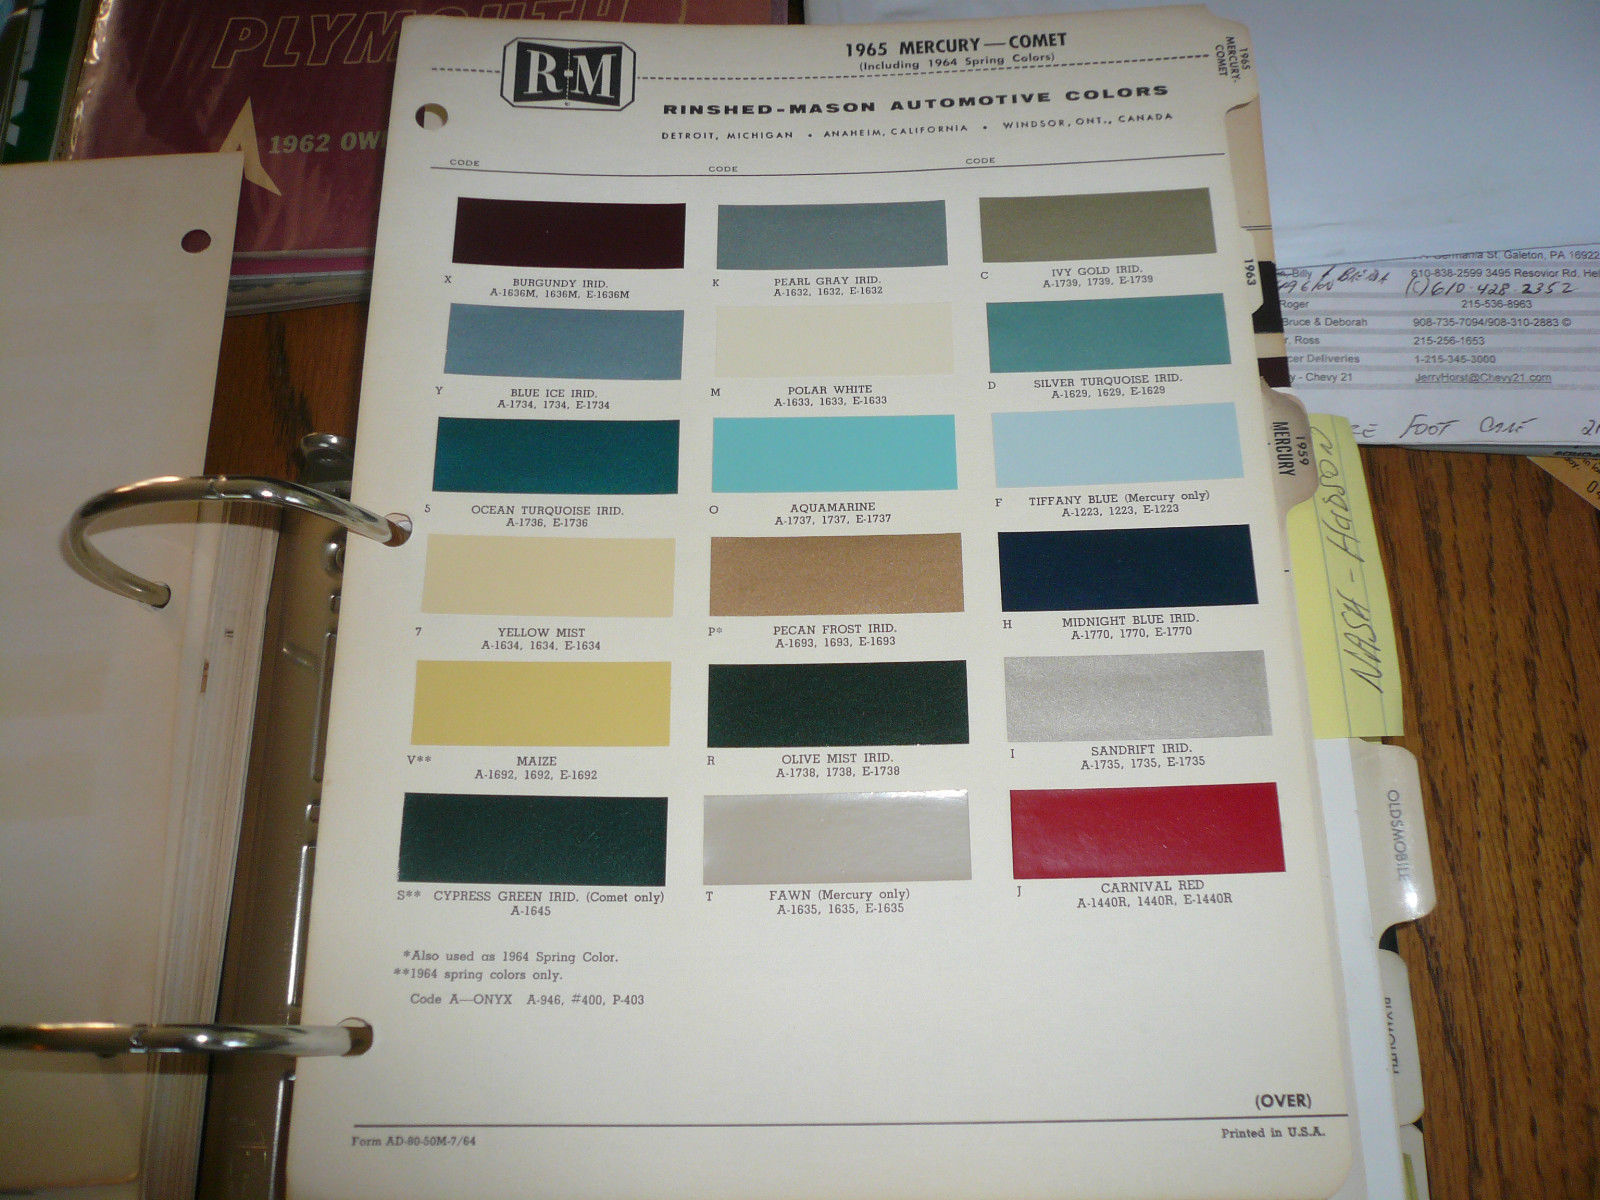 1965 Mercury Comet Including 64 Spring R M And 50 Similar Items 1964 Dodge Color Chips Chip Paint Sample Vintage